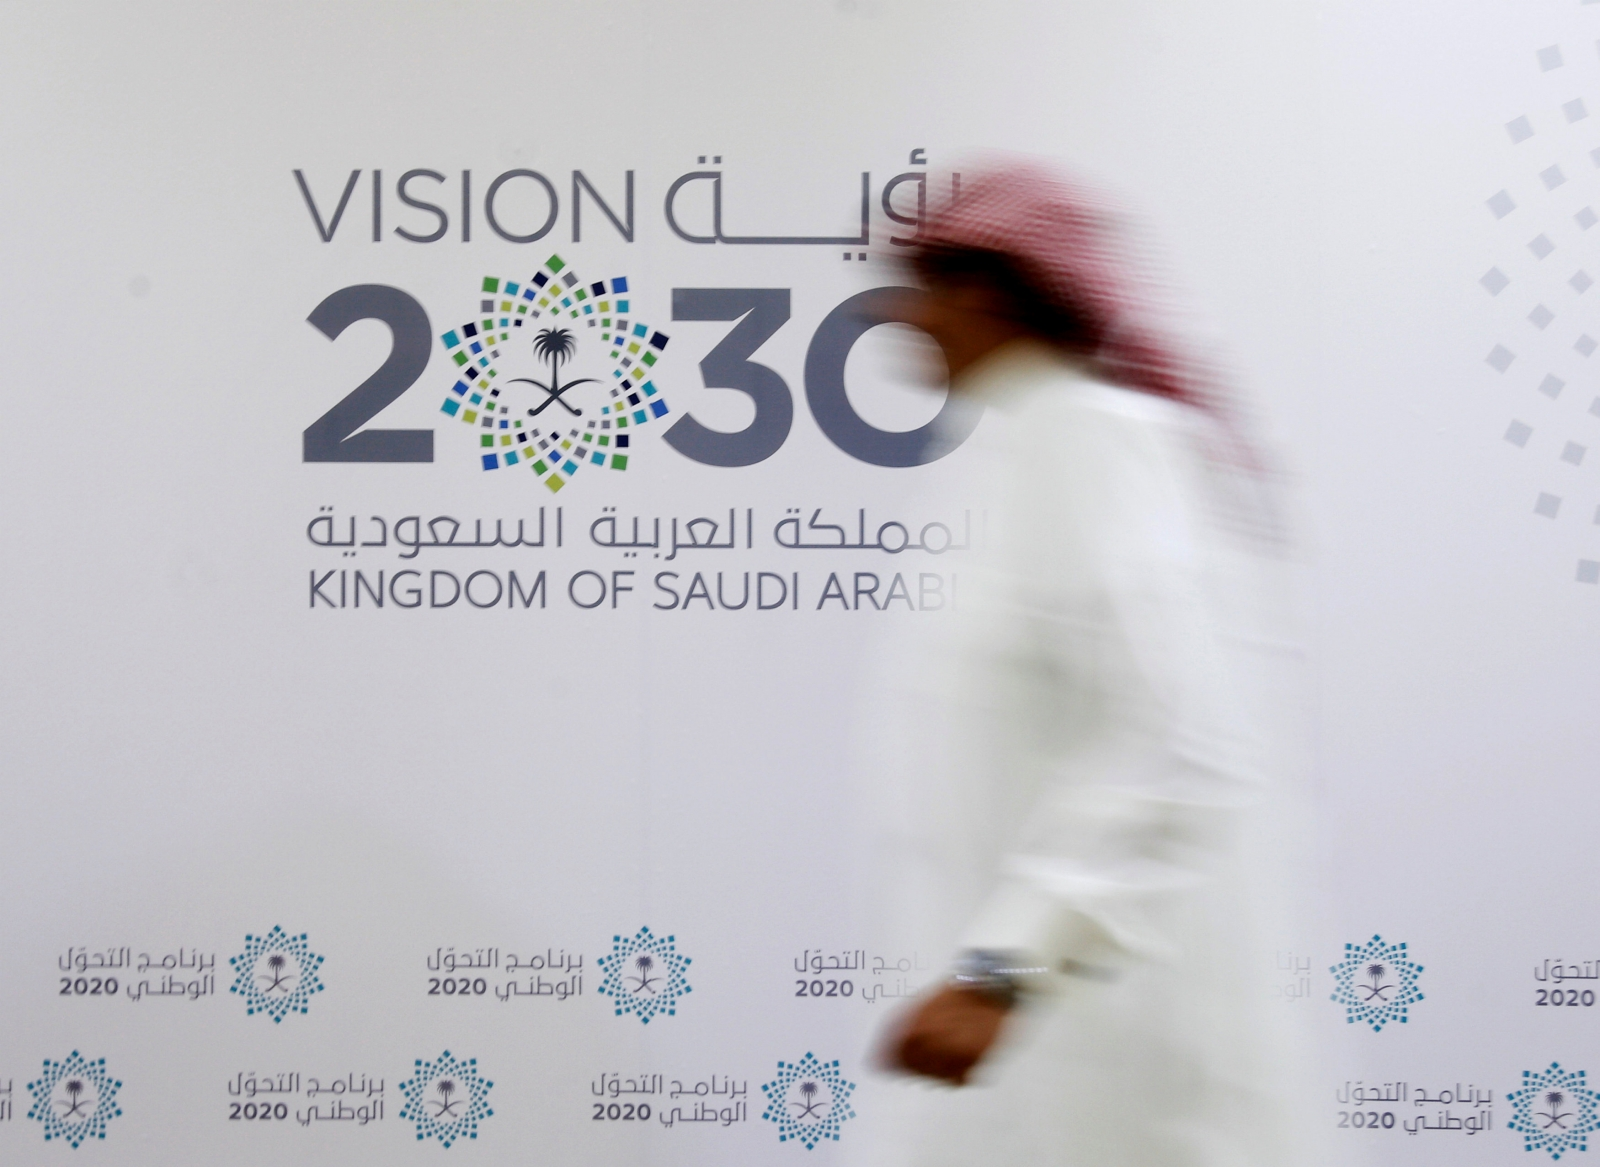 Hope And Change In Saudi Arabia >> Mohammed bin Salman's Vision 2030 is ambitious - but Saudi Arabia's problems are bigger than one man